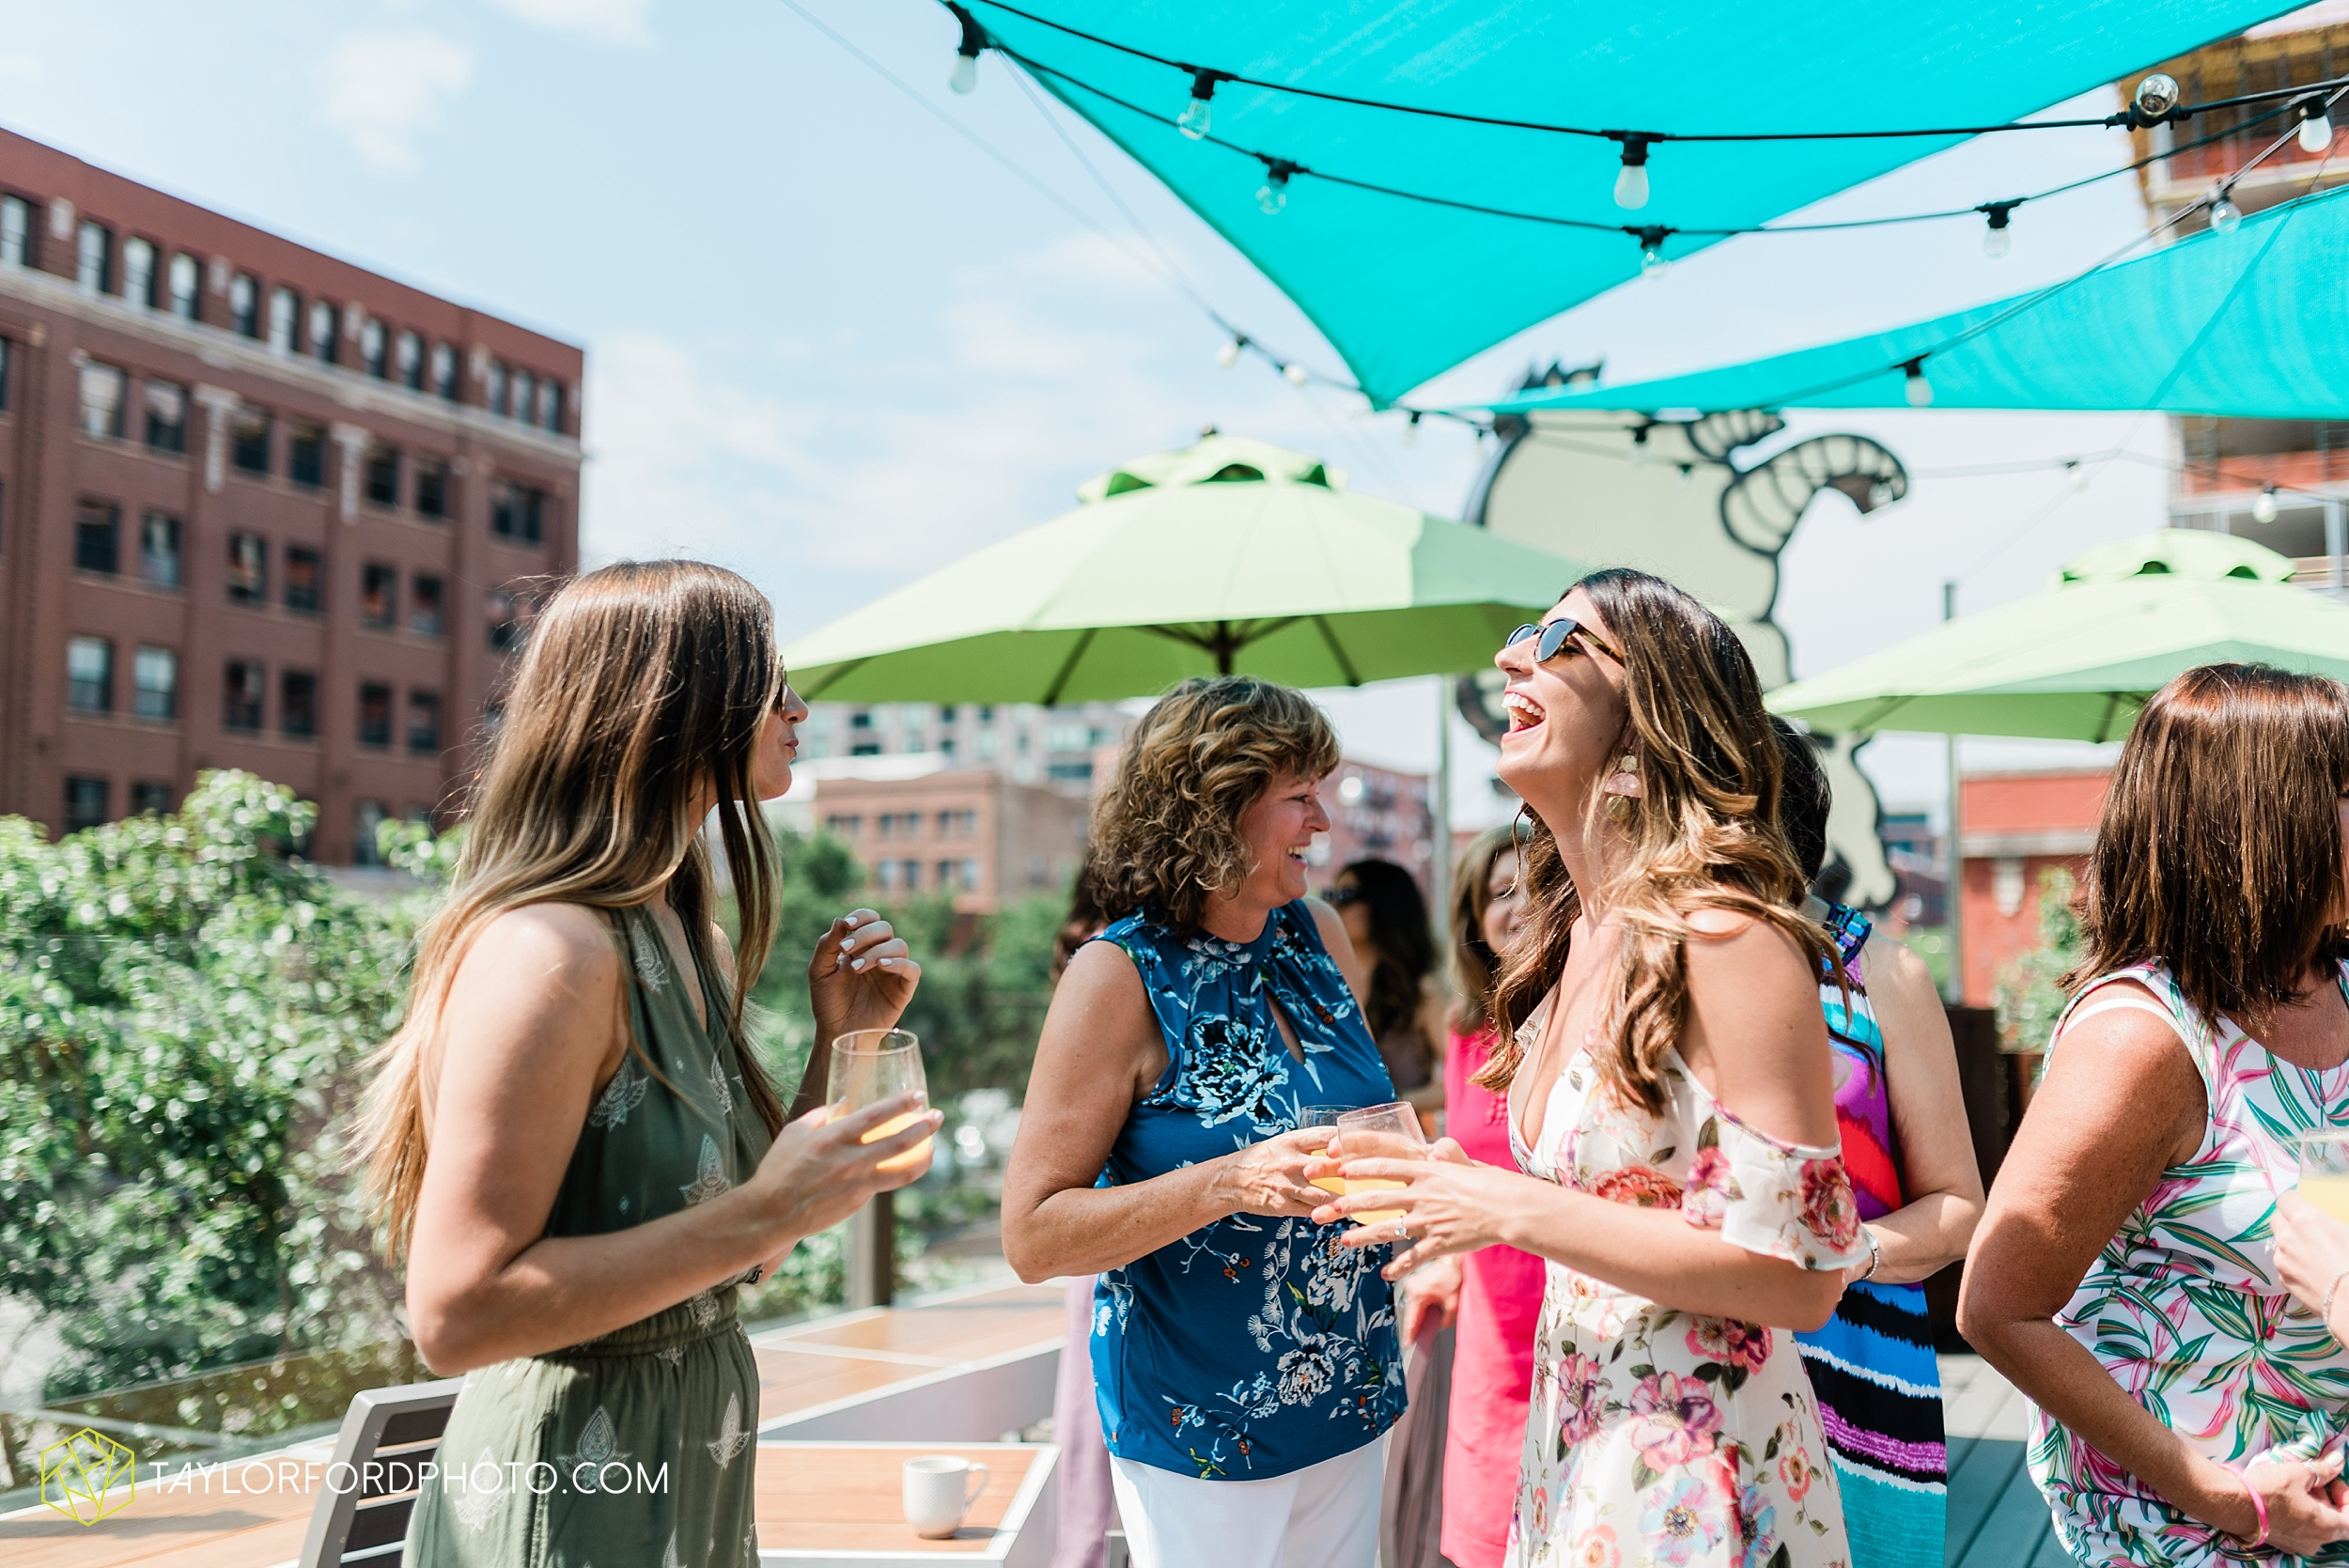 chicago-illinois-bridal-shower-little-goat-diner-west-loop-wedding-photographer-taylor-ford-photographer_8816.jpg